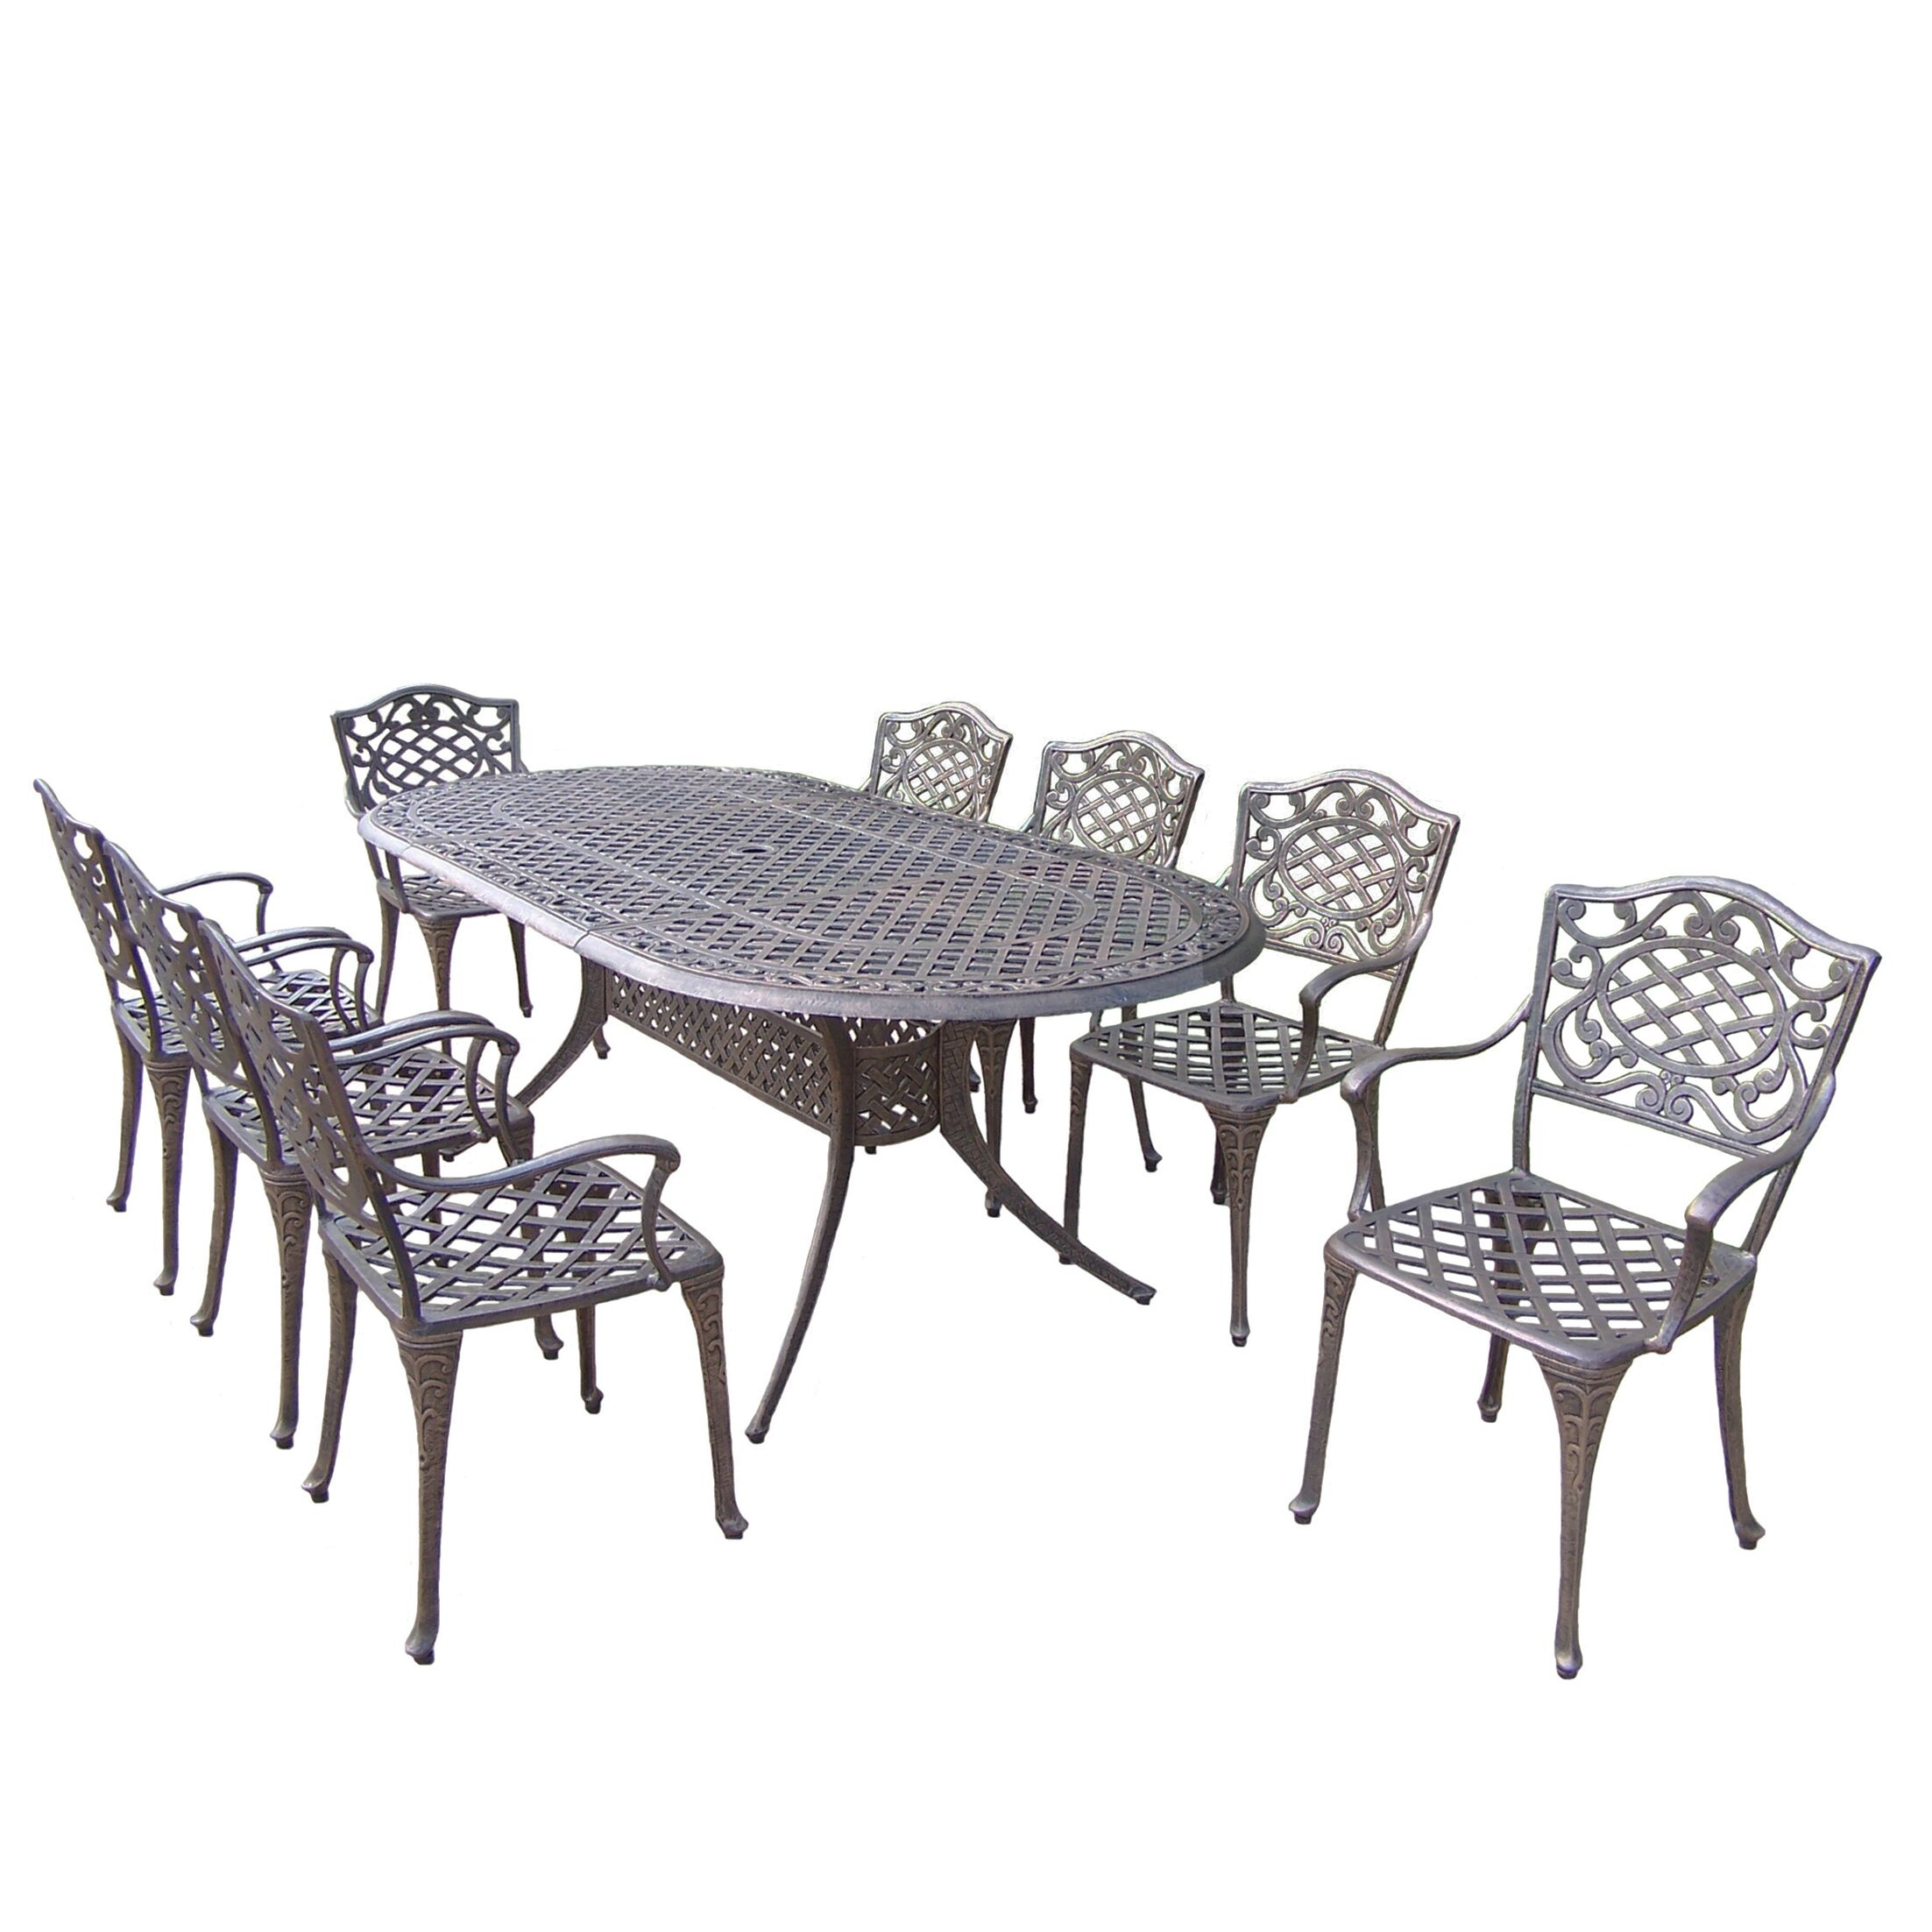 Mississippi 9 Piece Dining Set Cushion: Without